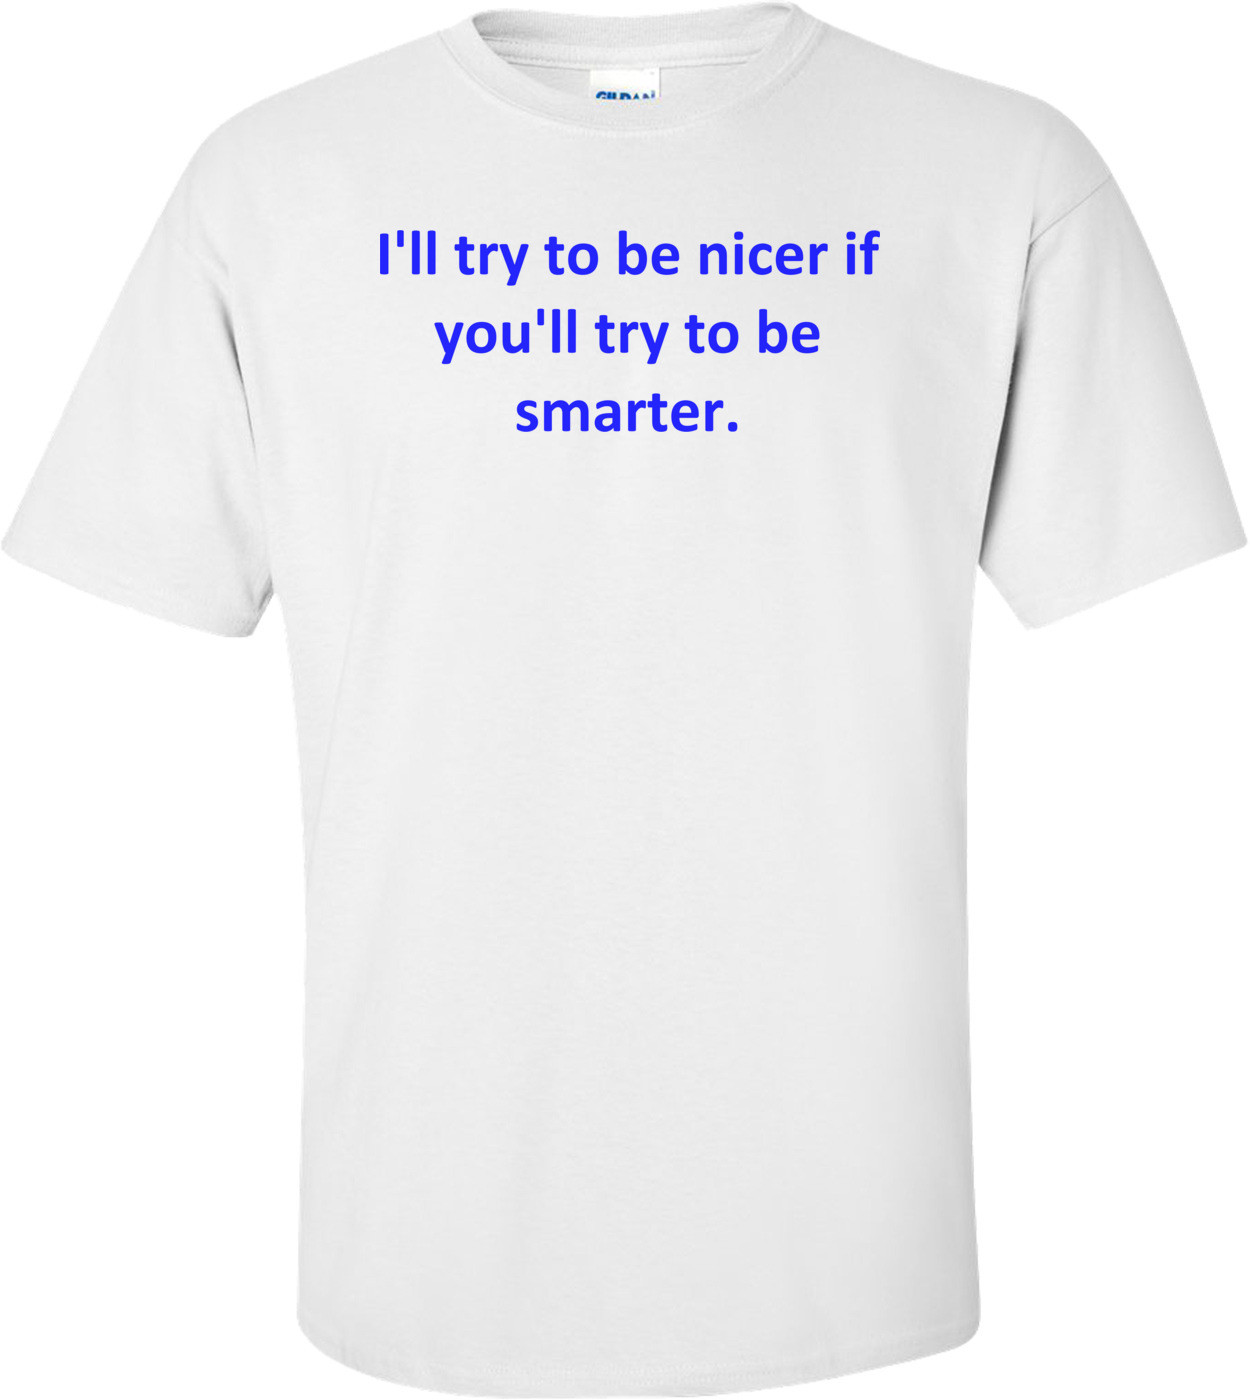 I'll try to be nicer if you'll try to be smarter. Shirt